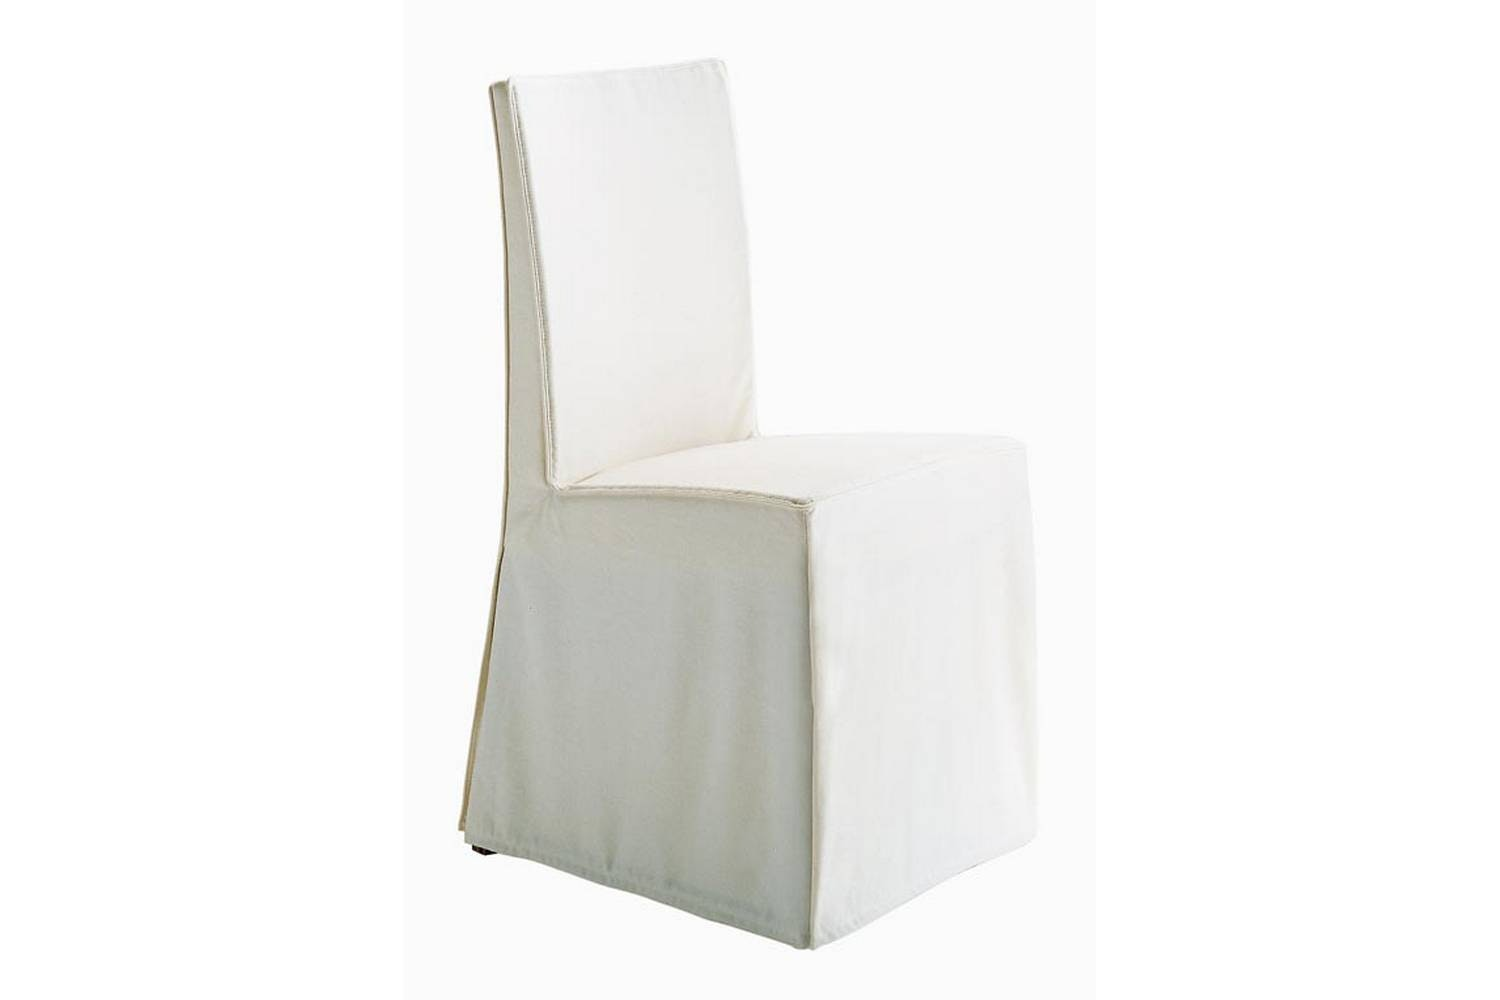 Creta Due Chair by Carlo Colombo for Poliform